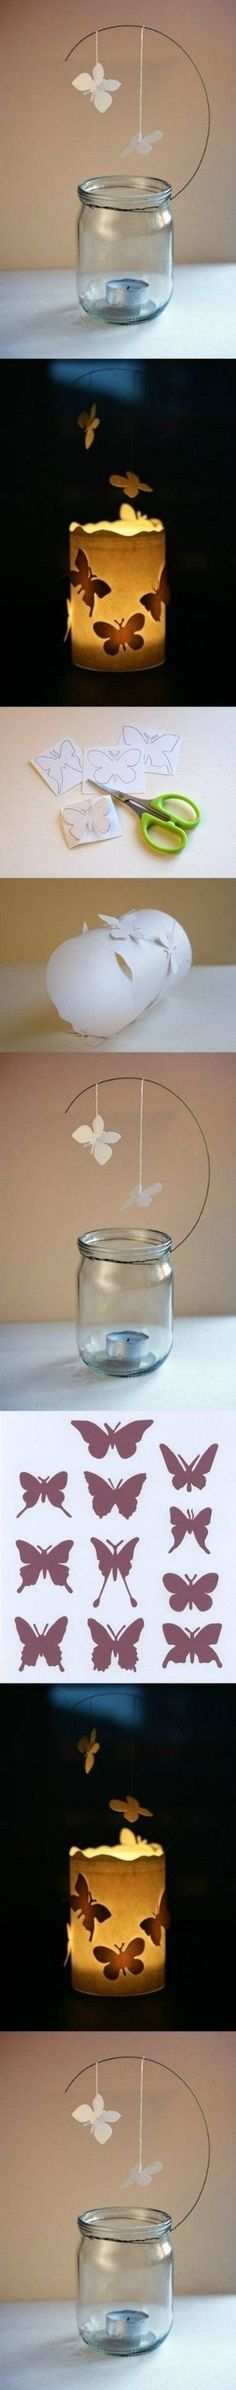 DIY Butterfly Candle Decor  craft decor butterfly candle diy easy crafts craft ideas diy ideas home crafts  diy crafts craft decor do it yourself craft decorations easy diy diy photos diy tutorials diy tutorial ideas